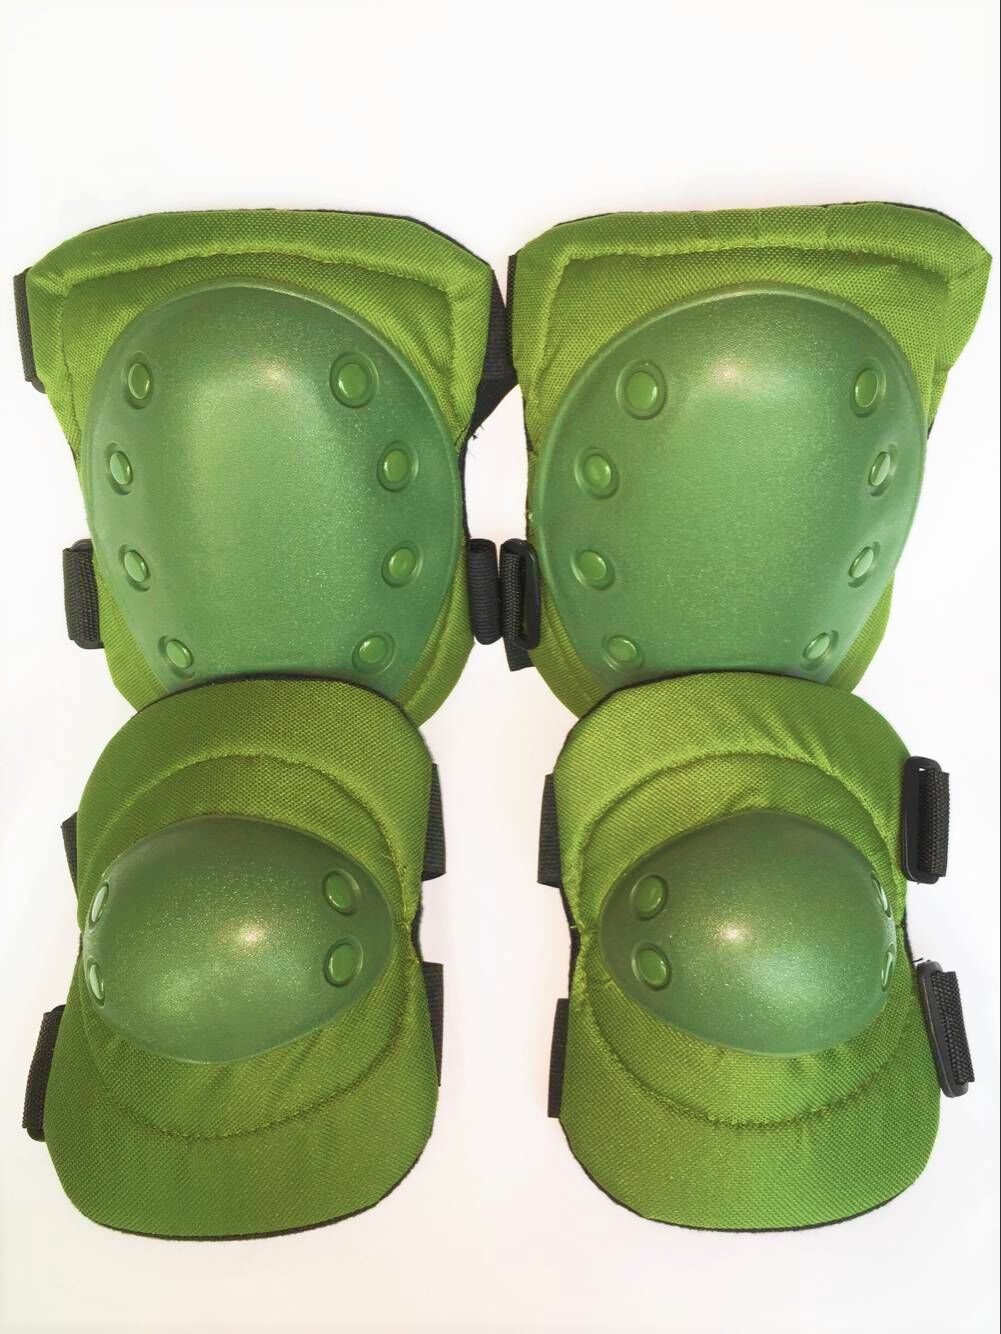 Bargain Crusader Military Tactical Knee Pad Elbow Pad Set Airsoft Knee Elbow Protective Pads Combat Paintball Skate Outdoor Sports Safety Guard Gear (Military Green) by Bargain Crusader